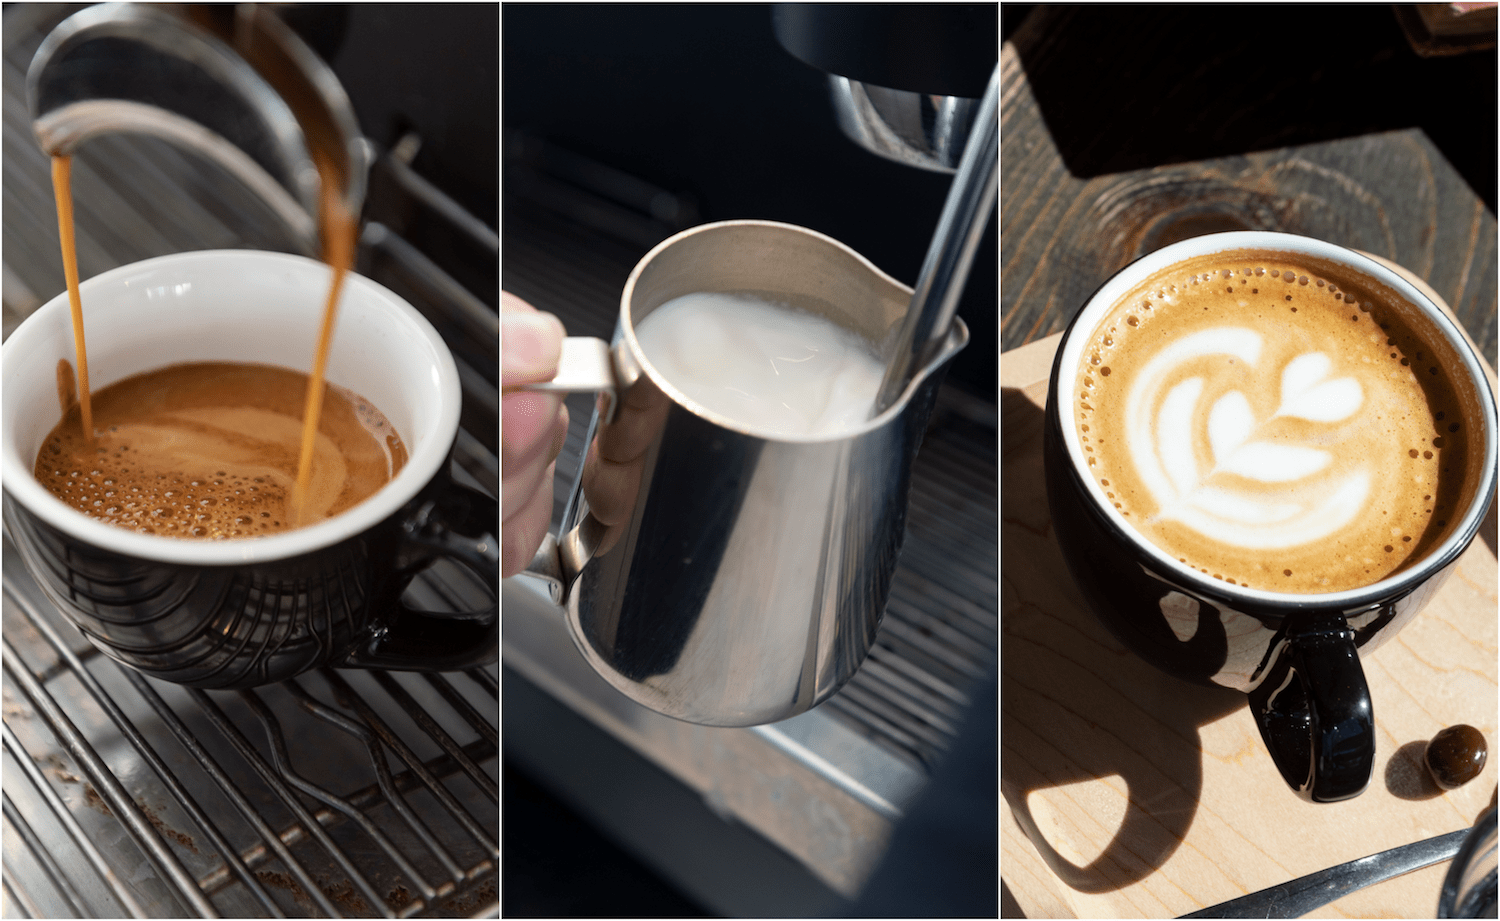 Making an espresso shot, frothing milk, and a finished vanilla latte